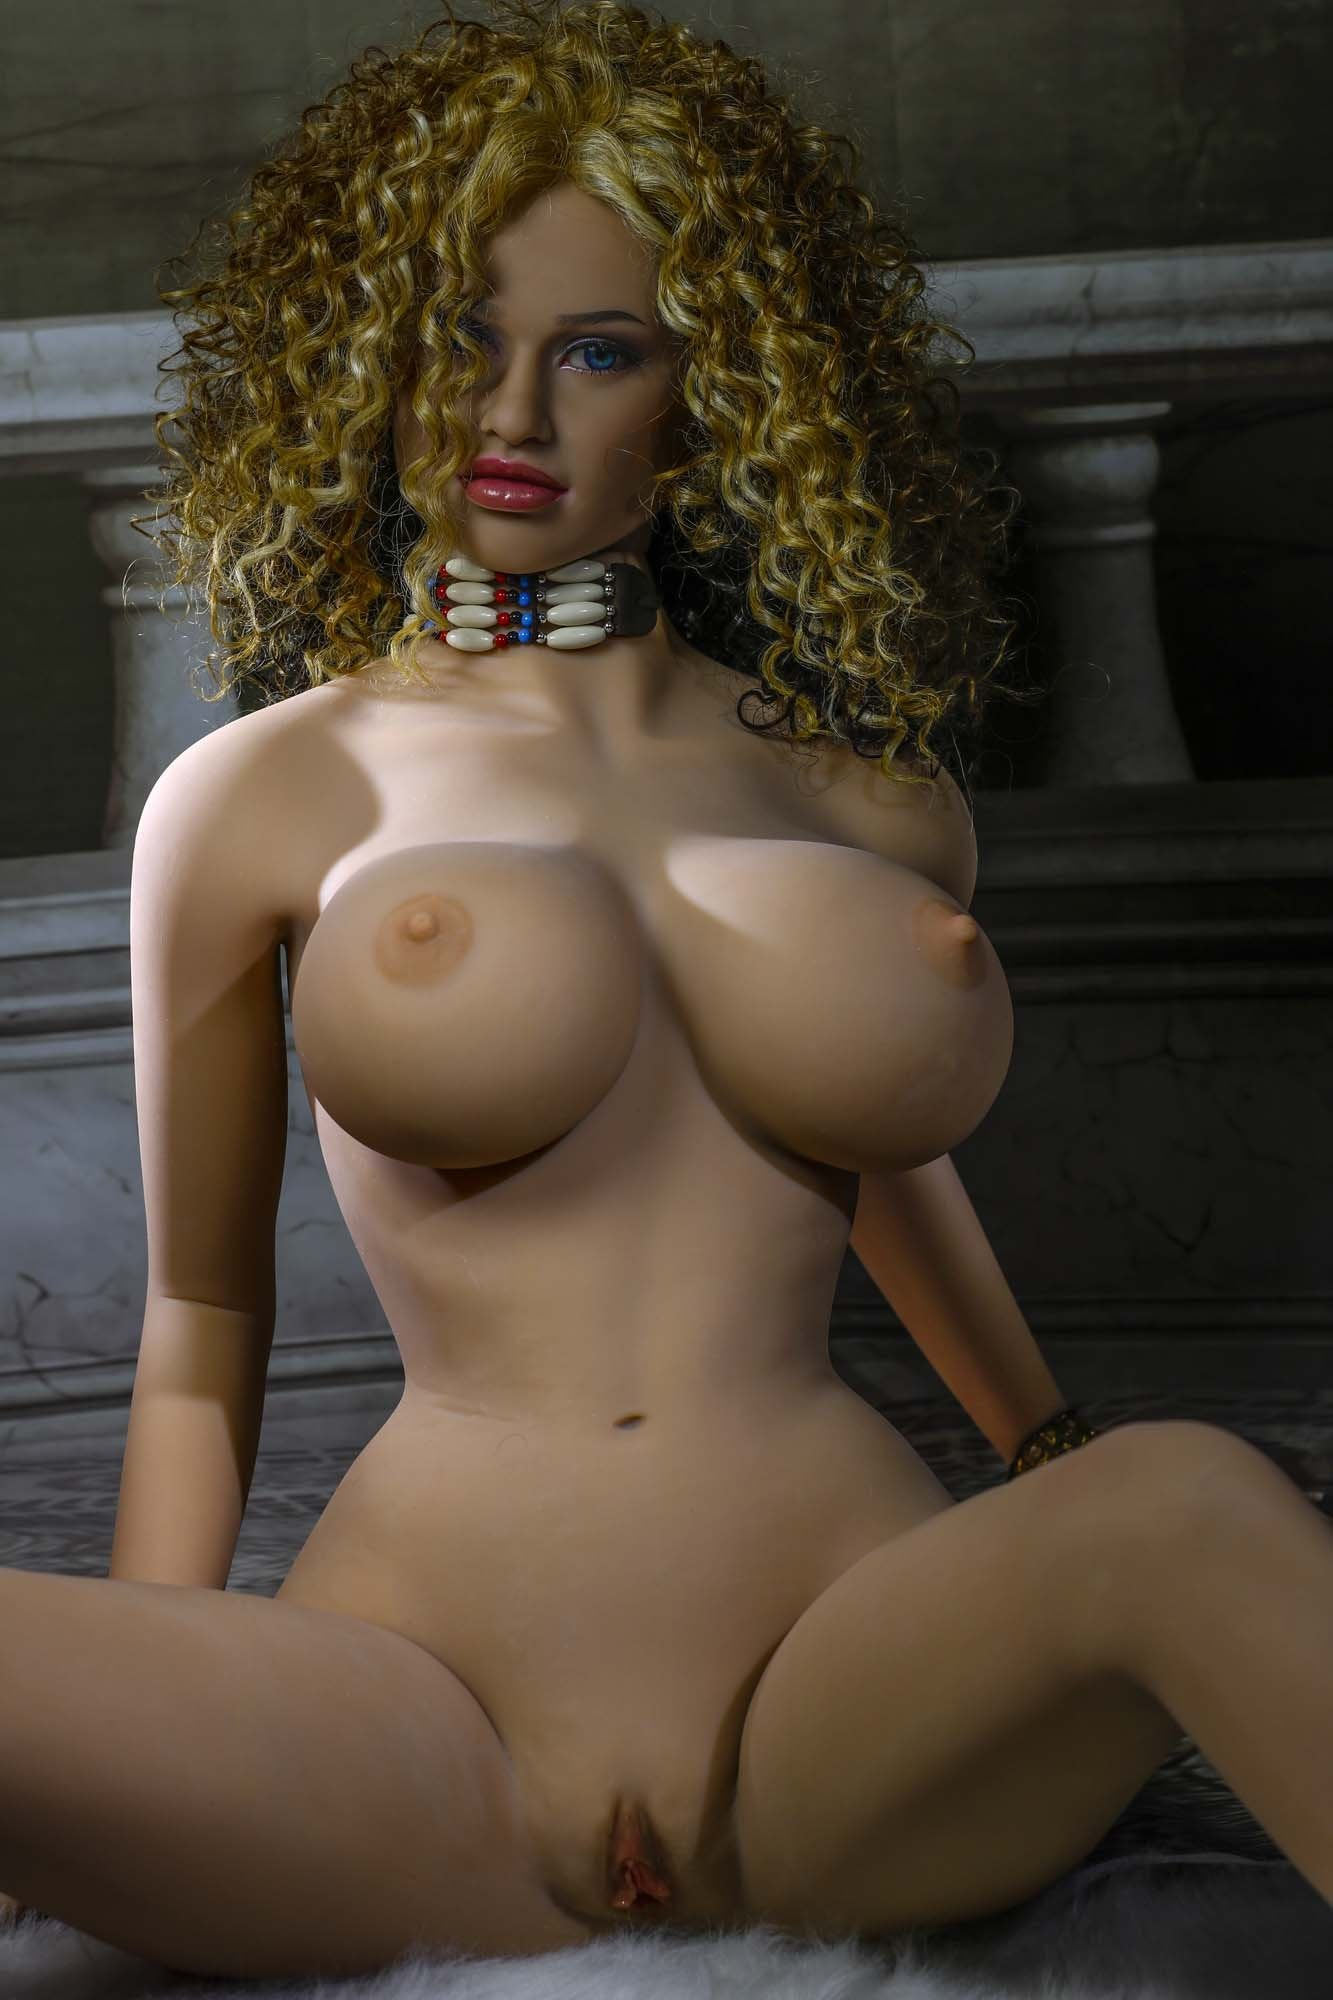 oona 158cm brown hair jy big boobs athletic tan skin tpe sex doll(11)